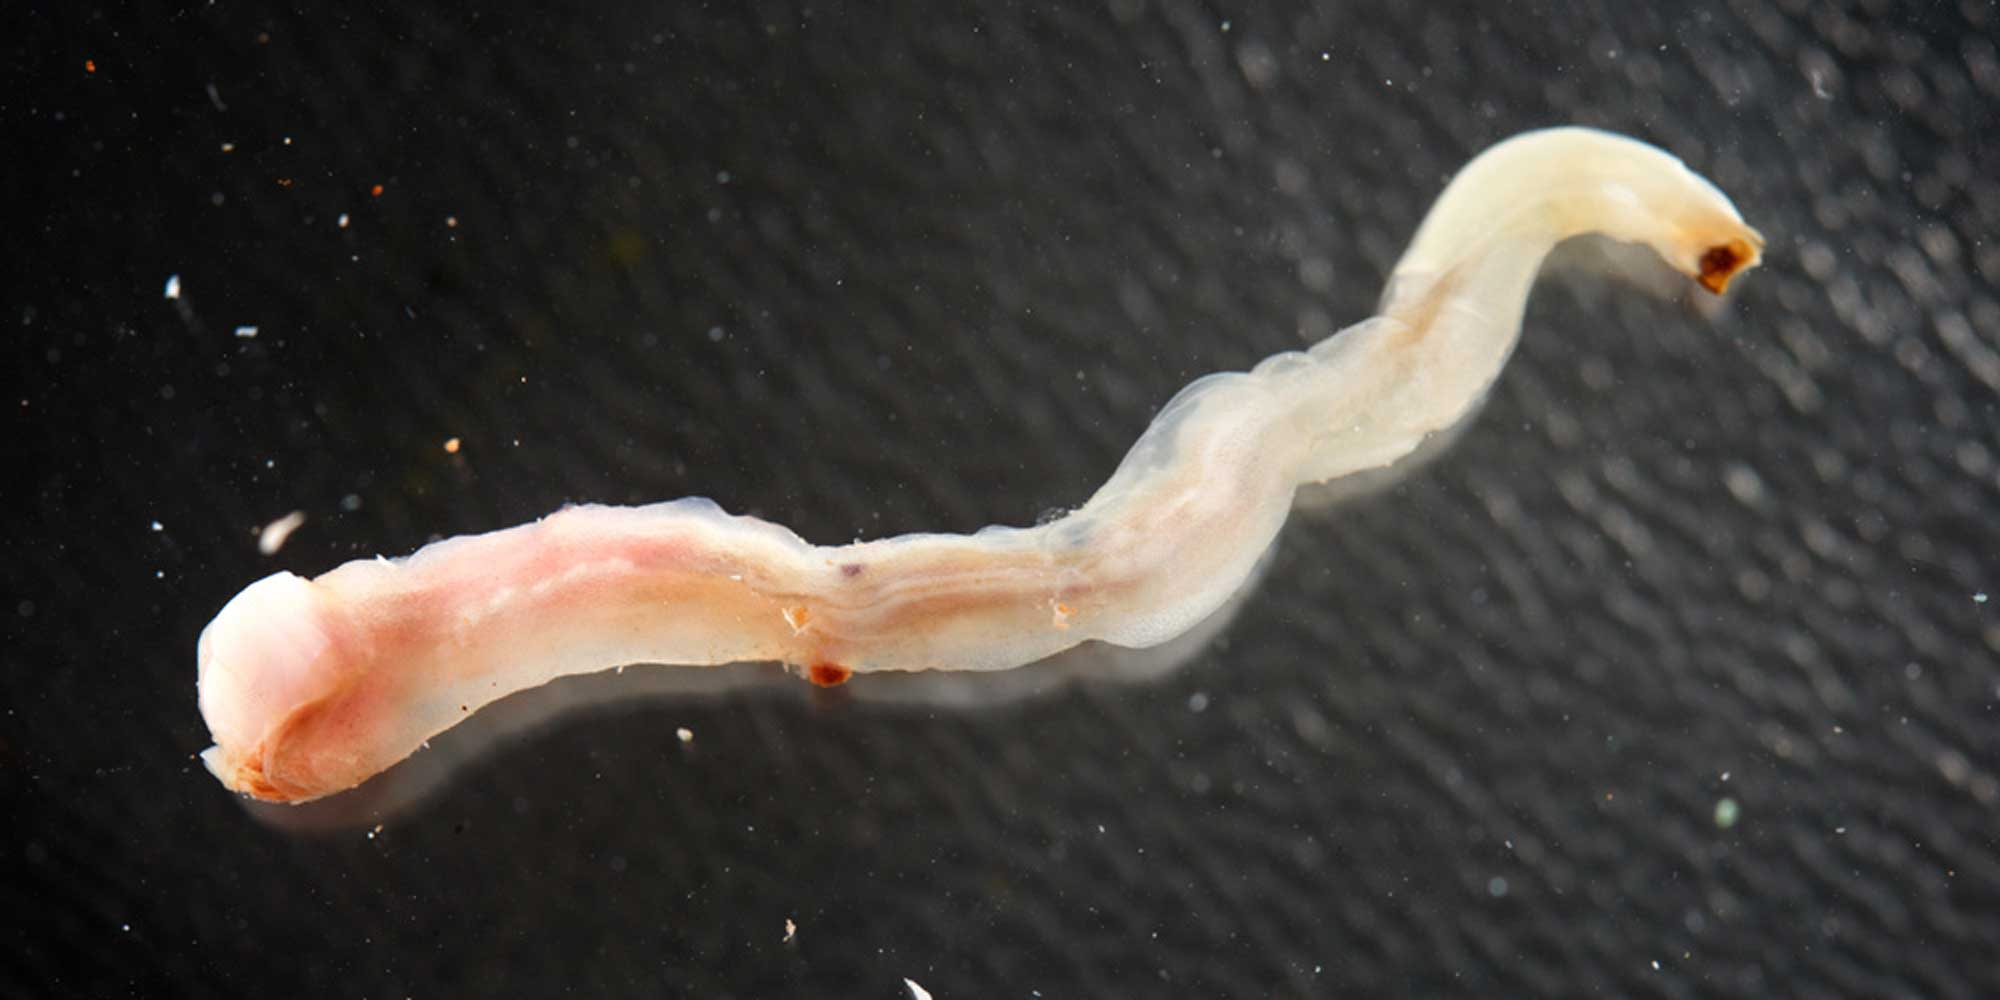 Photograph of the shipworm Teredo clappi removed from its tube.